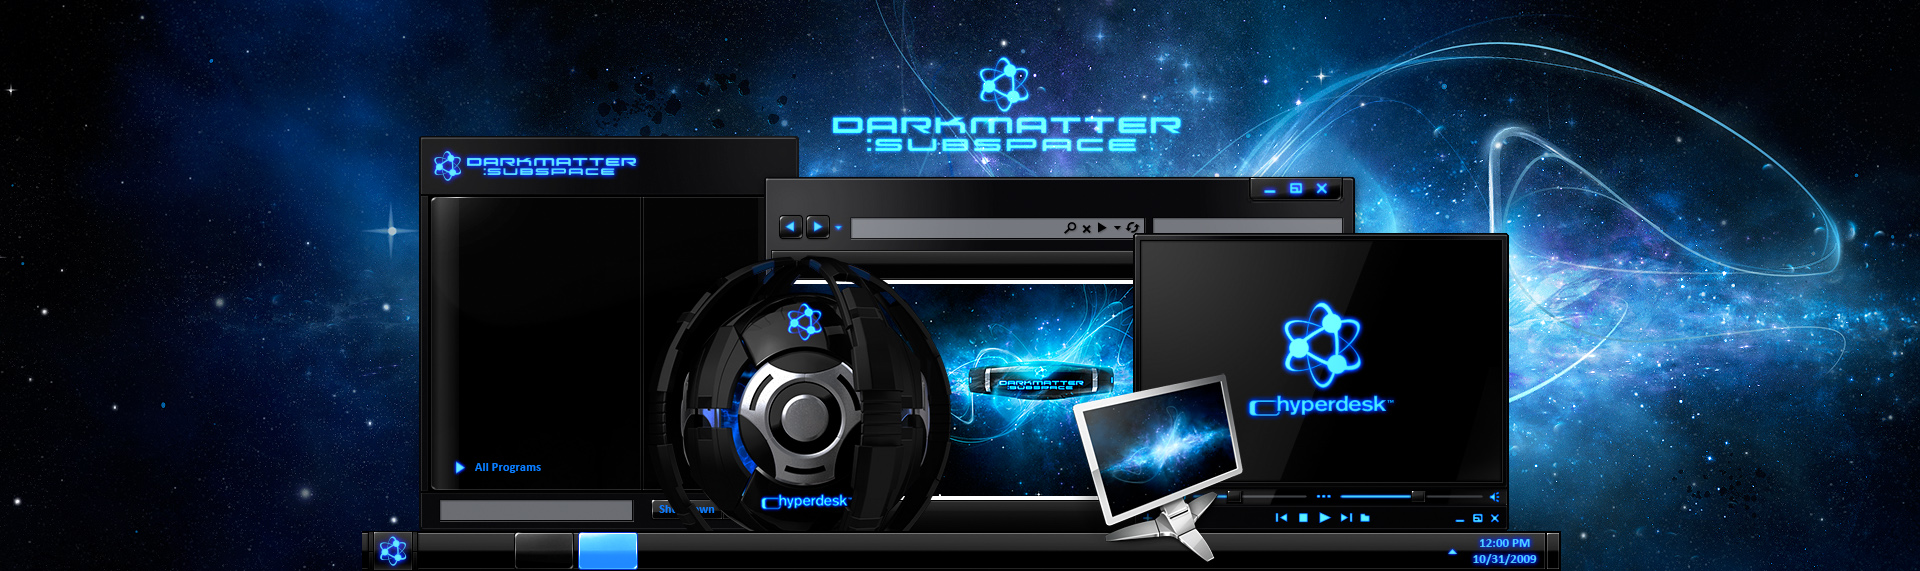 DarkMatter: Subspace  Client: The Skins Factory  From the artists who created Alienware's phenomenally popular desktop themes comes an invasion of galactically cool desktops - DarkMatter: Quadrilogy. DarkMatter: Subspace, is an unbelievably slick hypersuite that completely transforms Windows XP / Vista / 7, into a super-futuristic, hi-tech environment. Hyperdesk's DarkMatter: Subspace contains: an icon set, custom Wallpapers, Windows Media Player skin & a dynamic, animated iTunes / WMP audio remote widget. This desktop theme is no longer available.